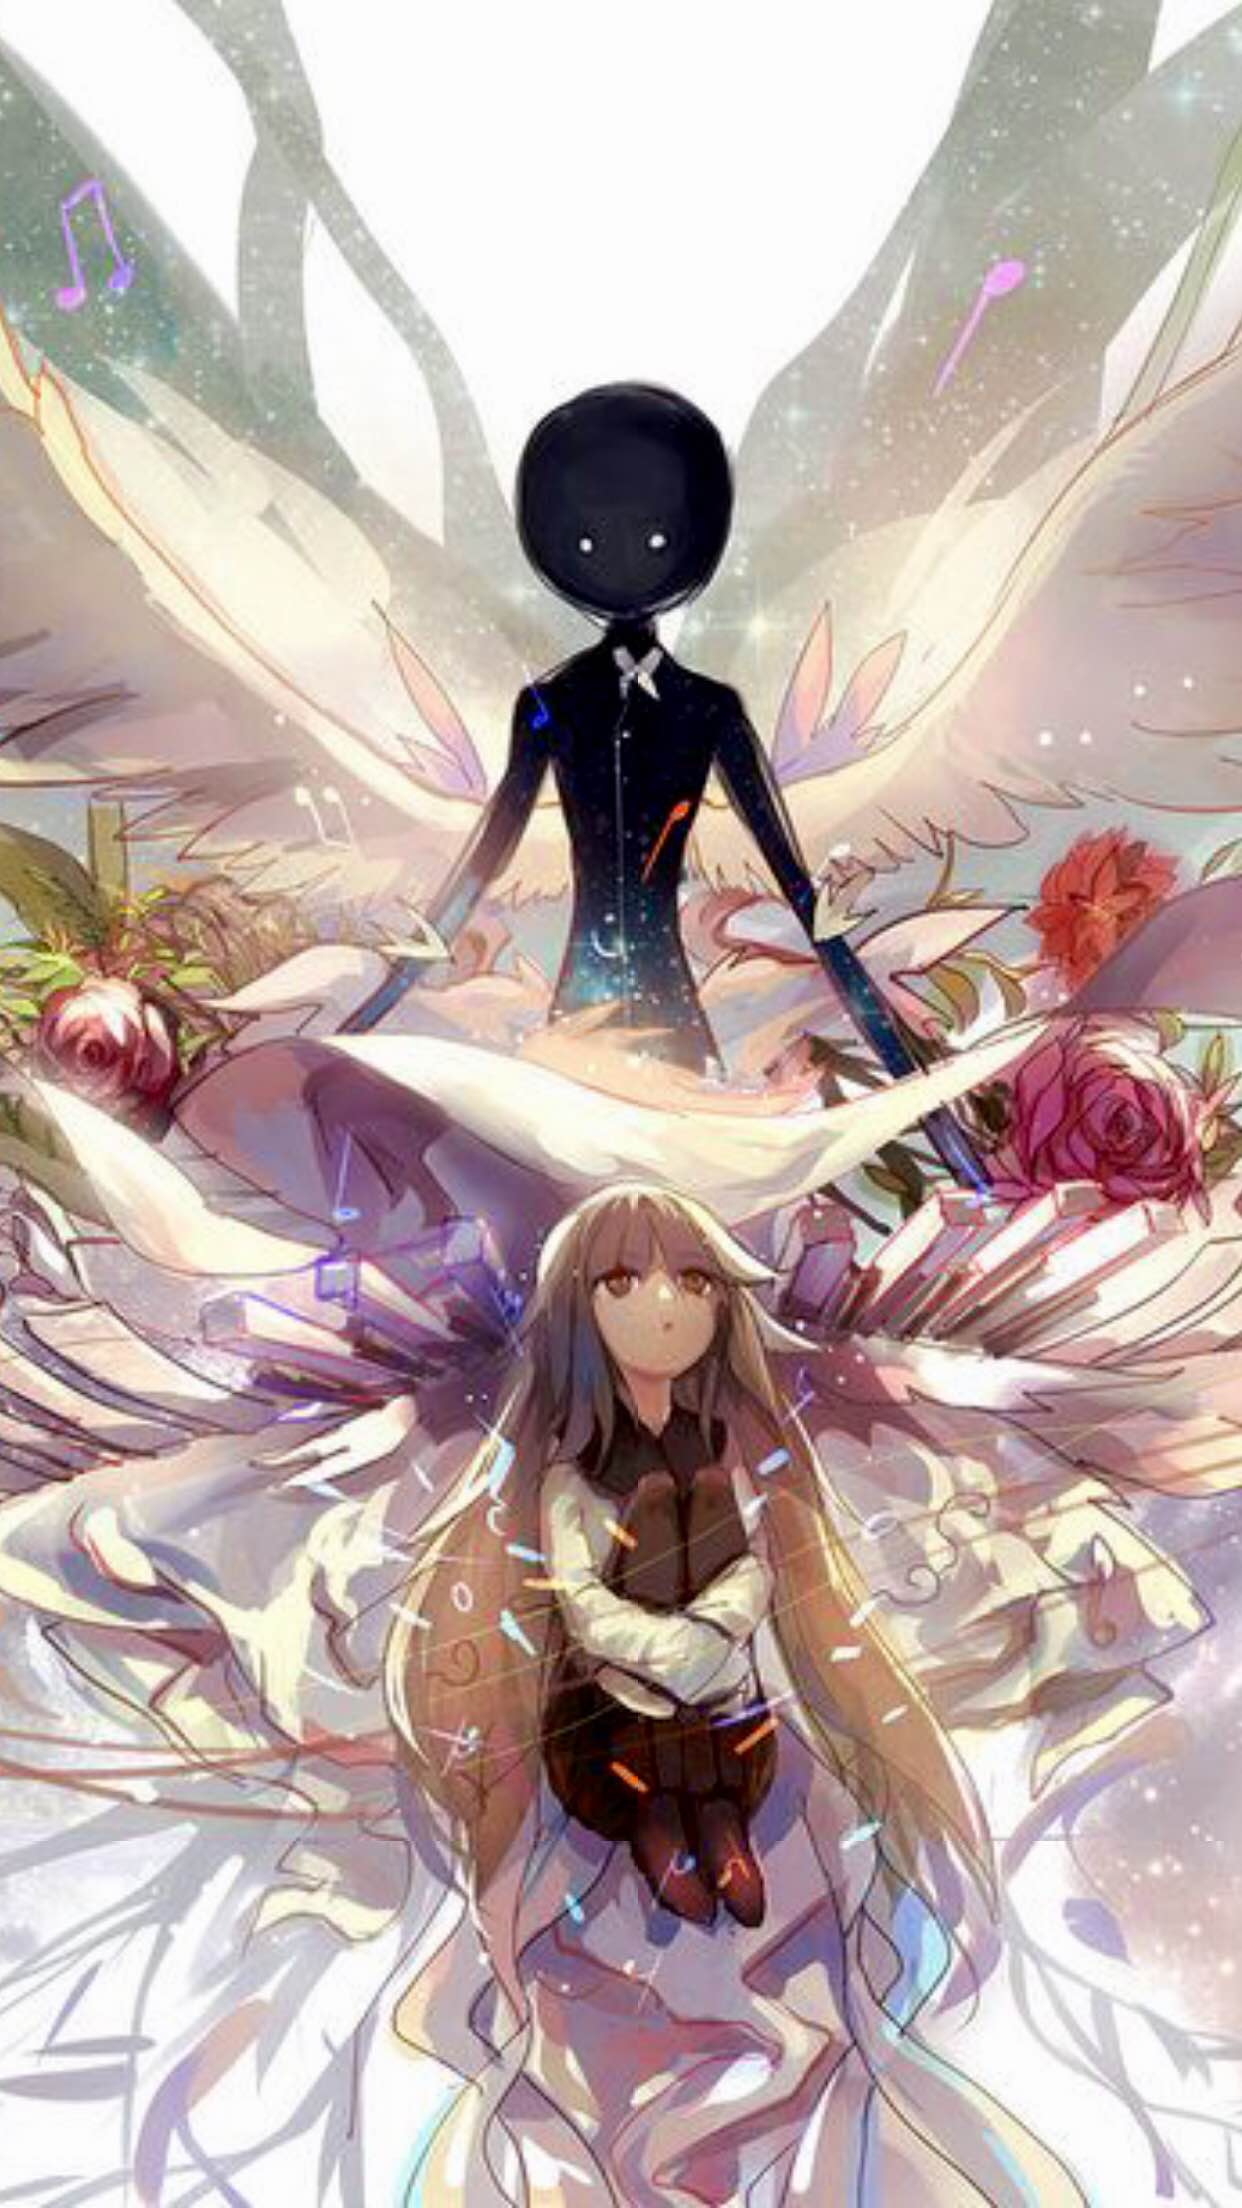 Iphone X Parallax Wallpaper Deemo Angel Wallpaper For Iphone X 8 7 6 Free